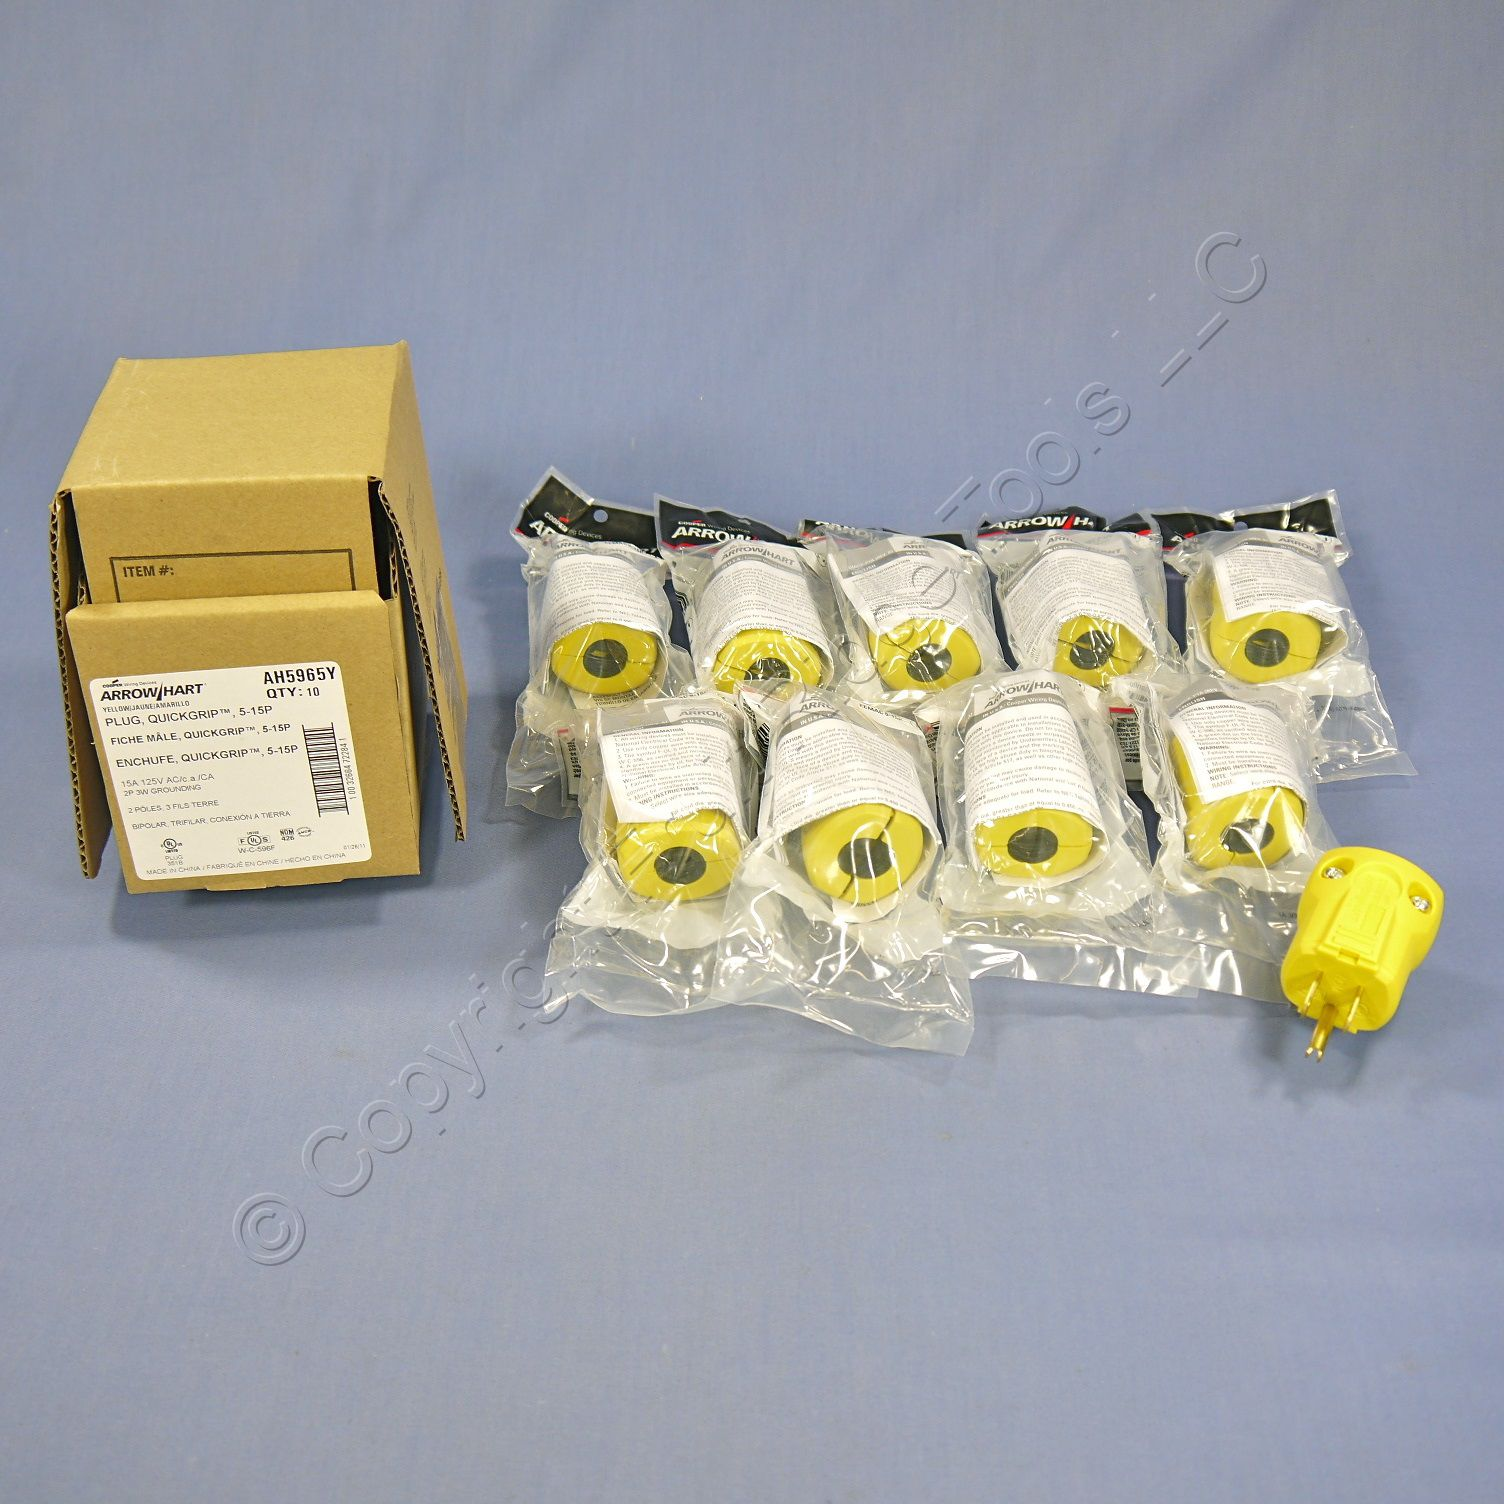 10 Cooper Arrow Hart Yellow QuickGrip Straight Blade Plugs 2P3W NEMA 5-15 15A 125V AH5965Y